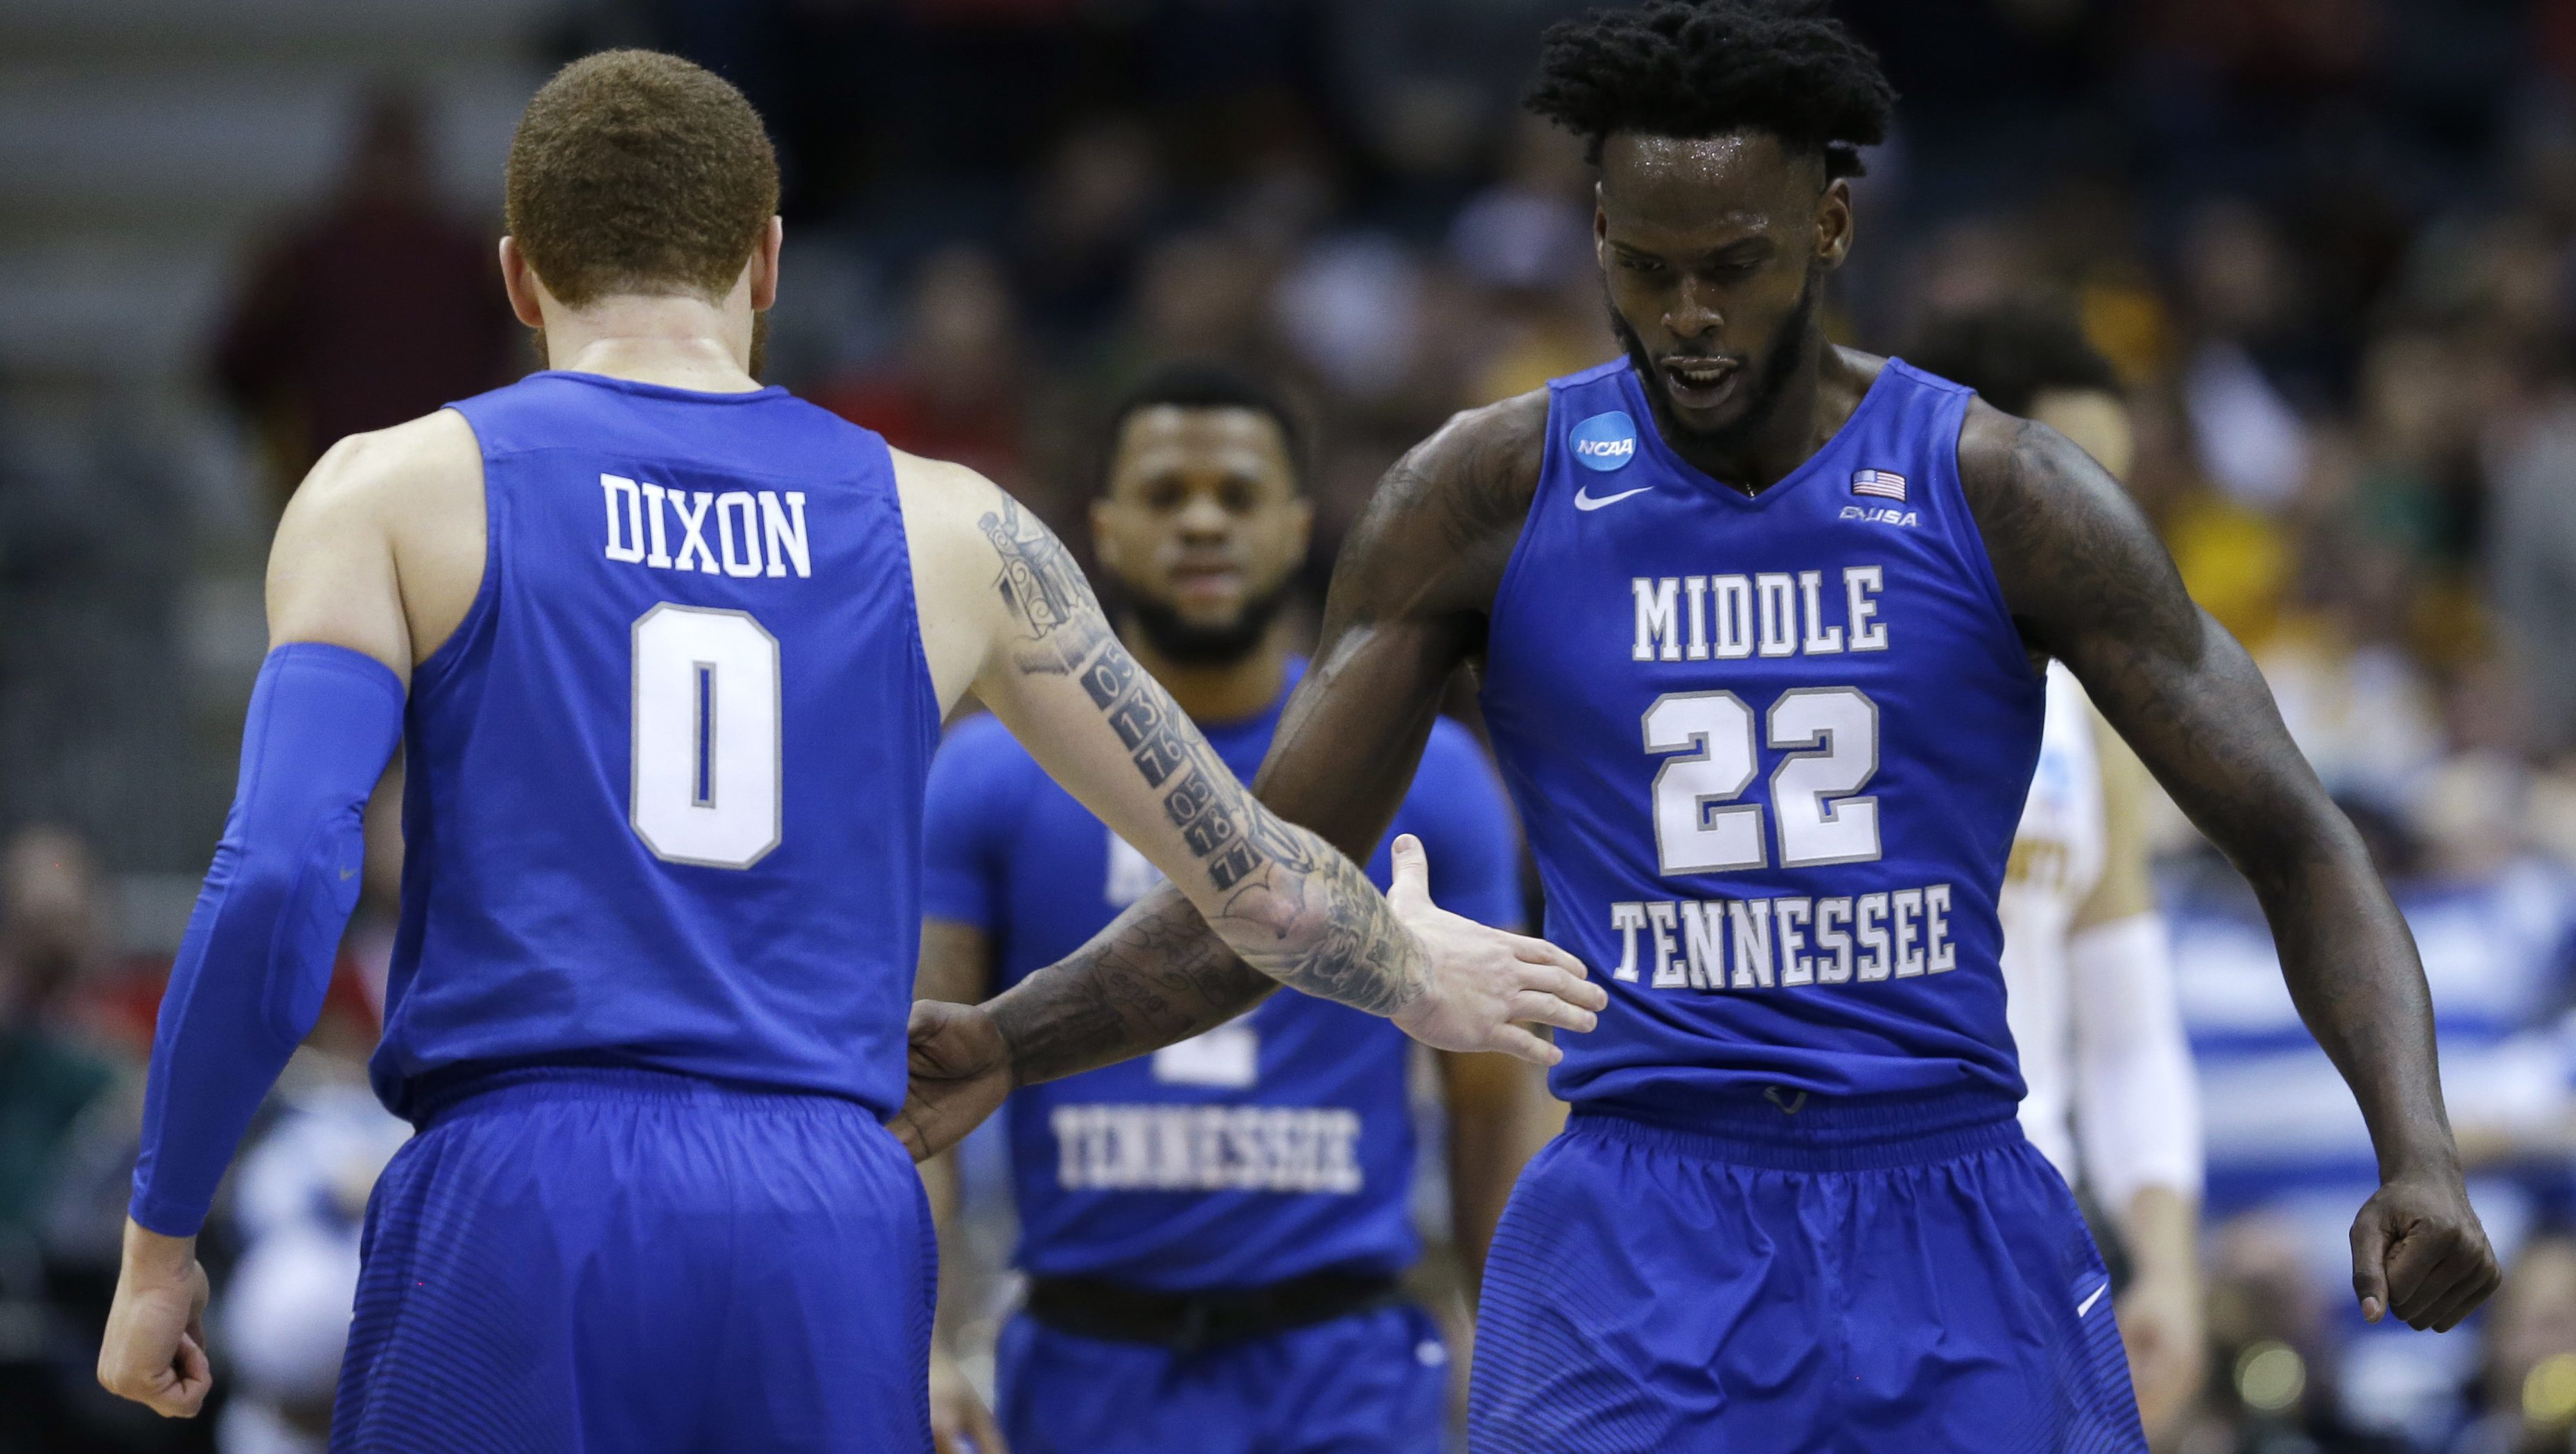 Middle Tennessee State's JaCorey Williams (22) and Tyrik Dixon (0) celebrate during the second half of an NCAA college basketball tournament first round game against Minnesota Thursday, March 16, 2017, in Milwaukee.